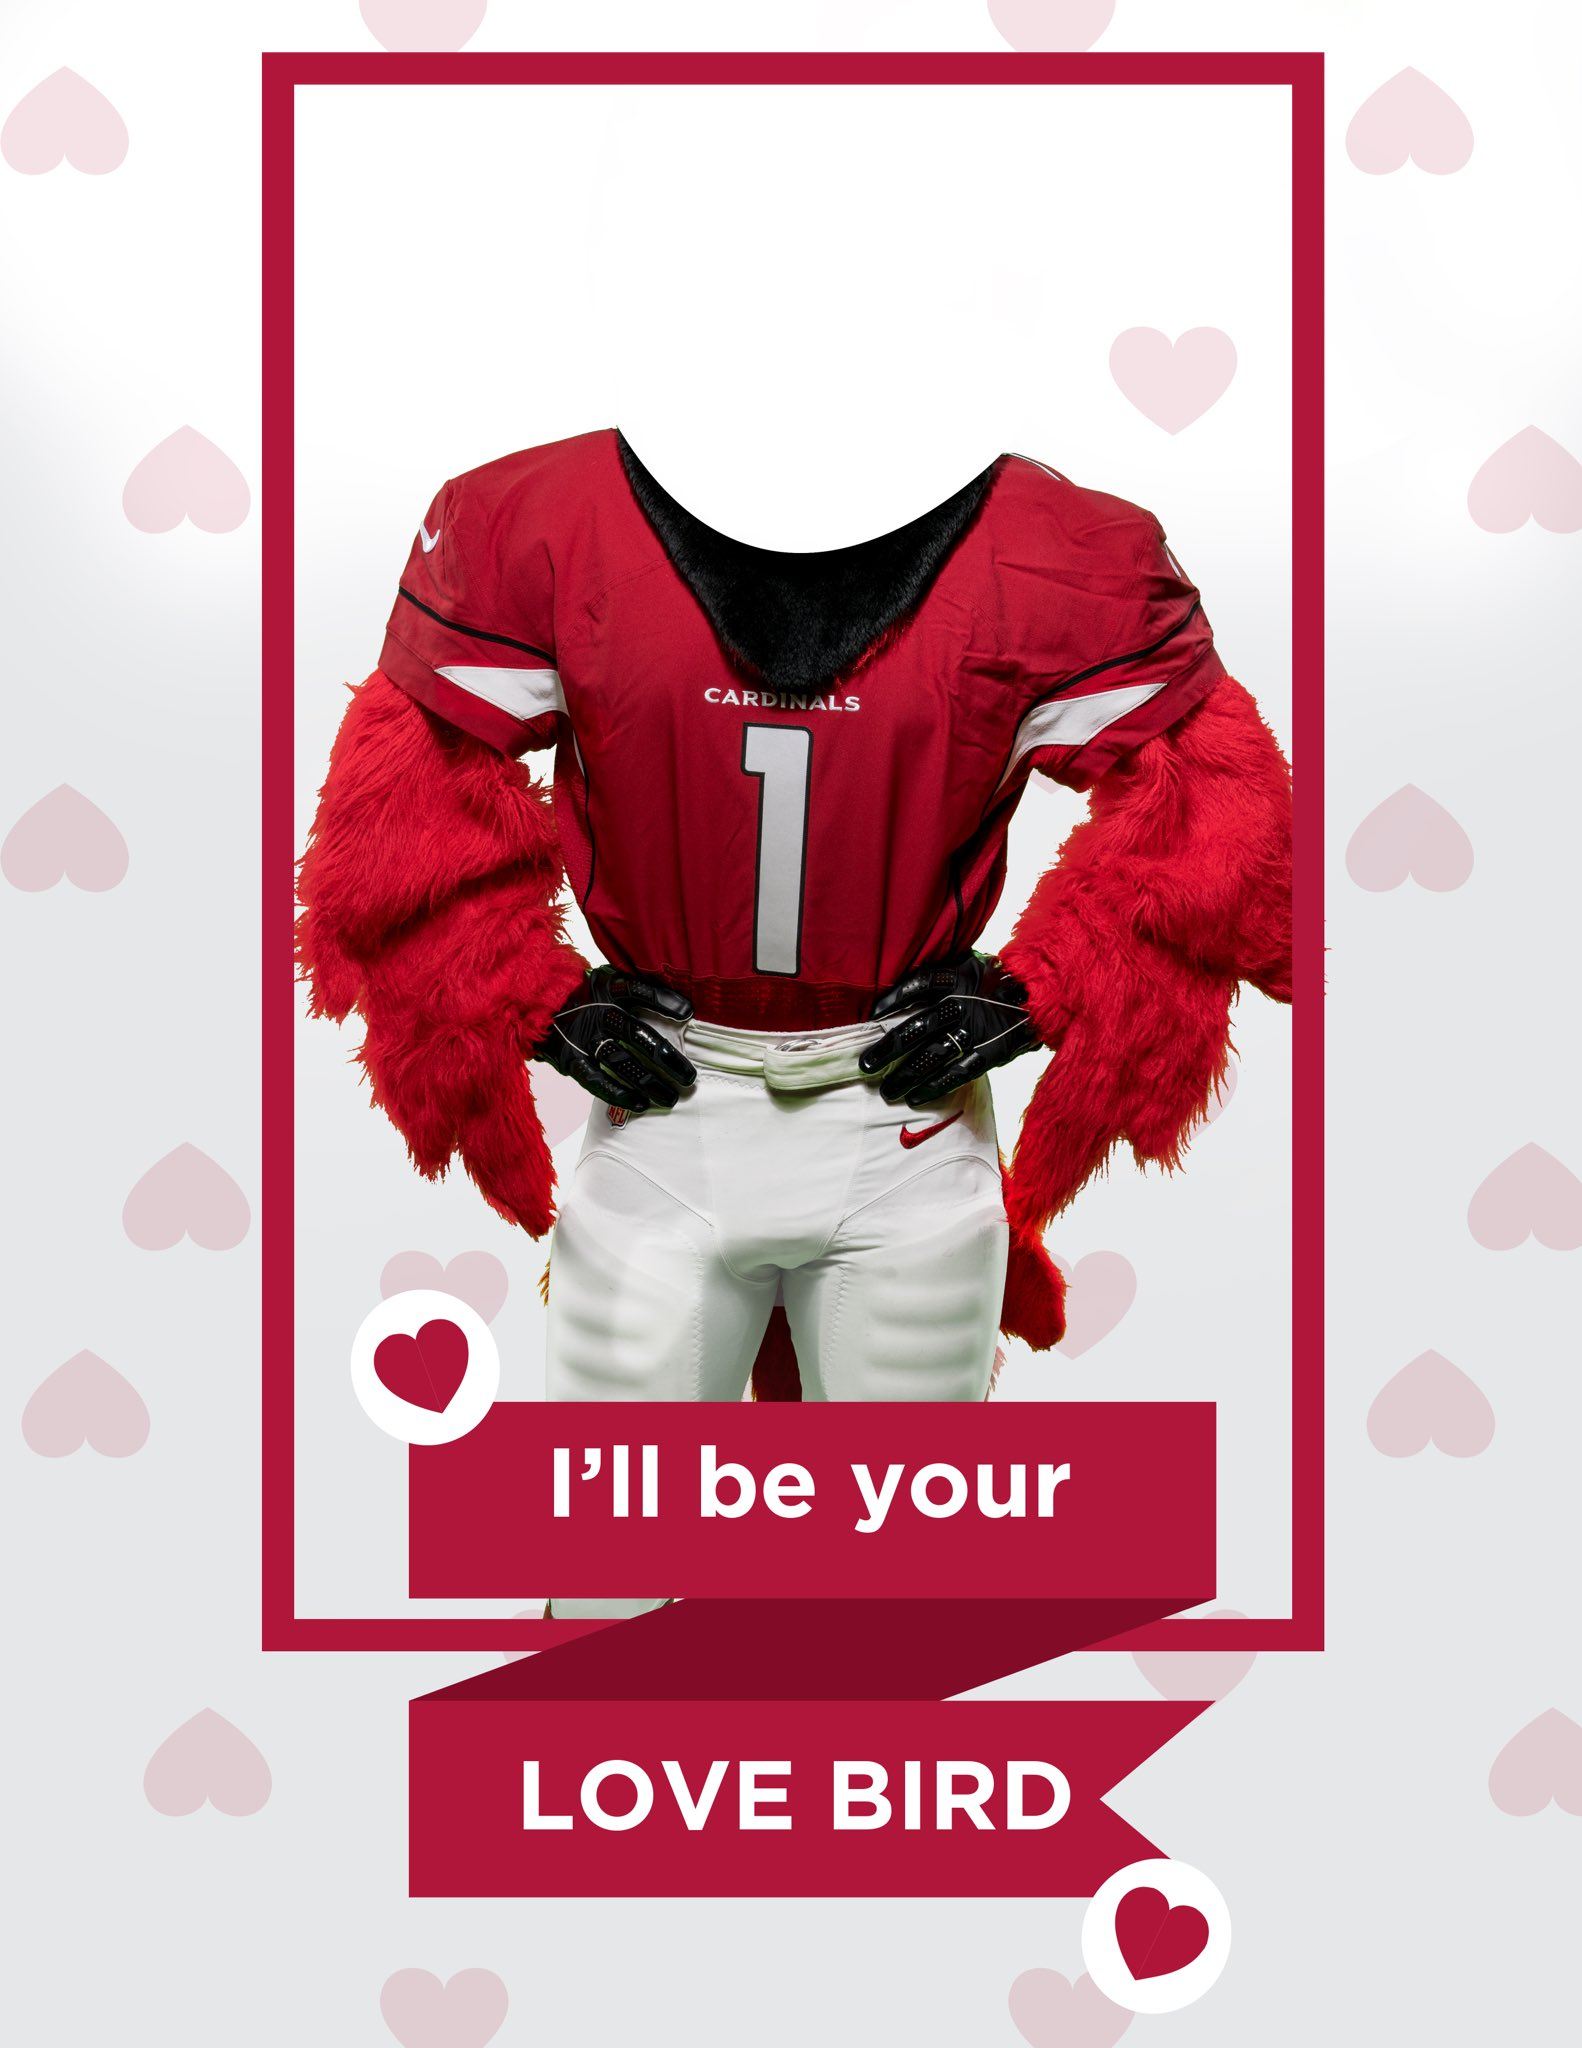 Need a last-minute Valentine's Day card?  Add your photo to this one in our app ➡️ https://t.co/QGajPnexpn https://t.co/Lc1m9NYciK